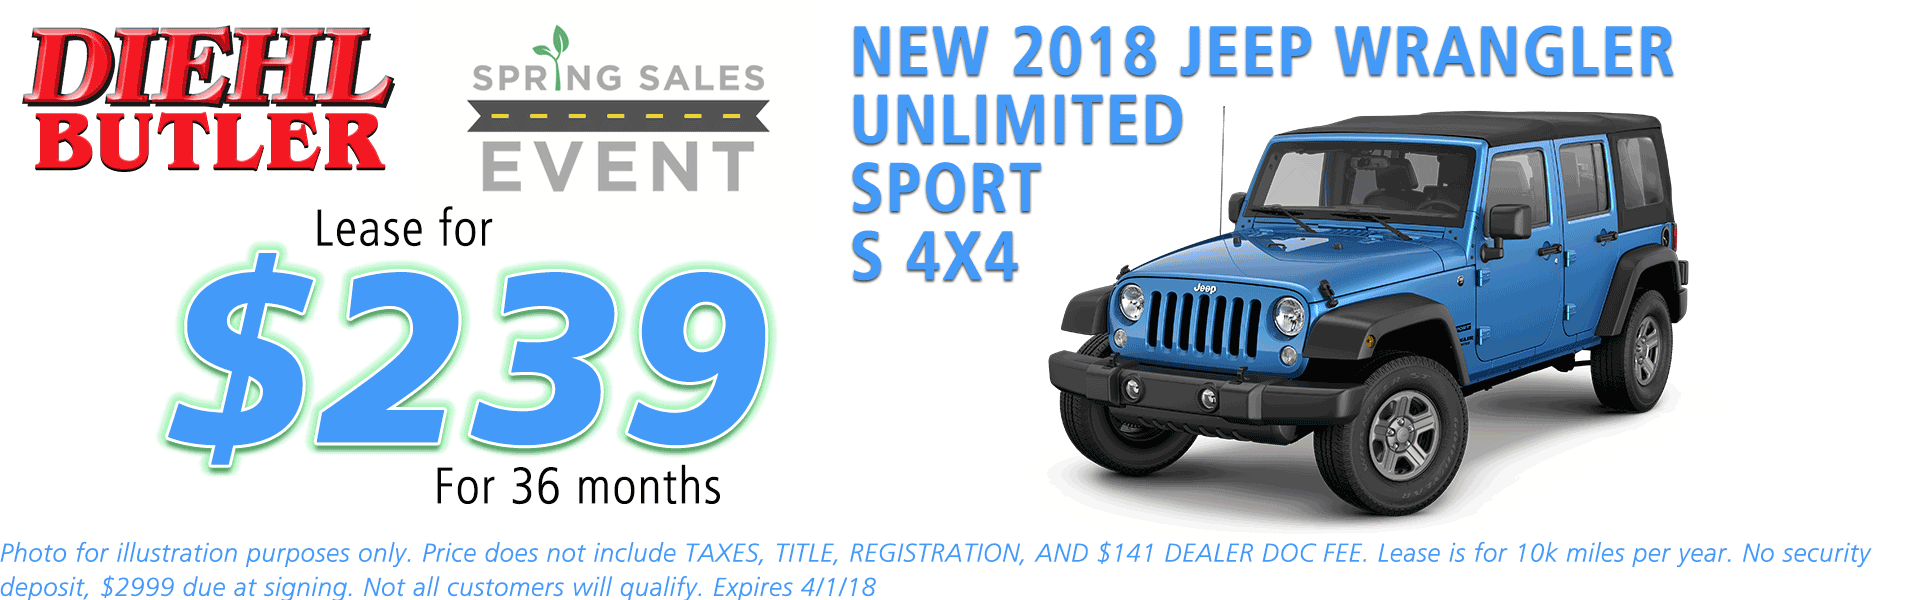 NEW 2018 JEEP WRANGLER UNLIMITED SPORT S 4X4 diehl chrysler jeep dodge ram serving butler cranberry mars saxonburg and pittsburgh